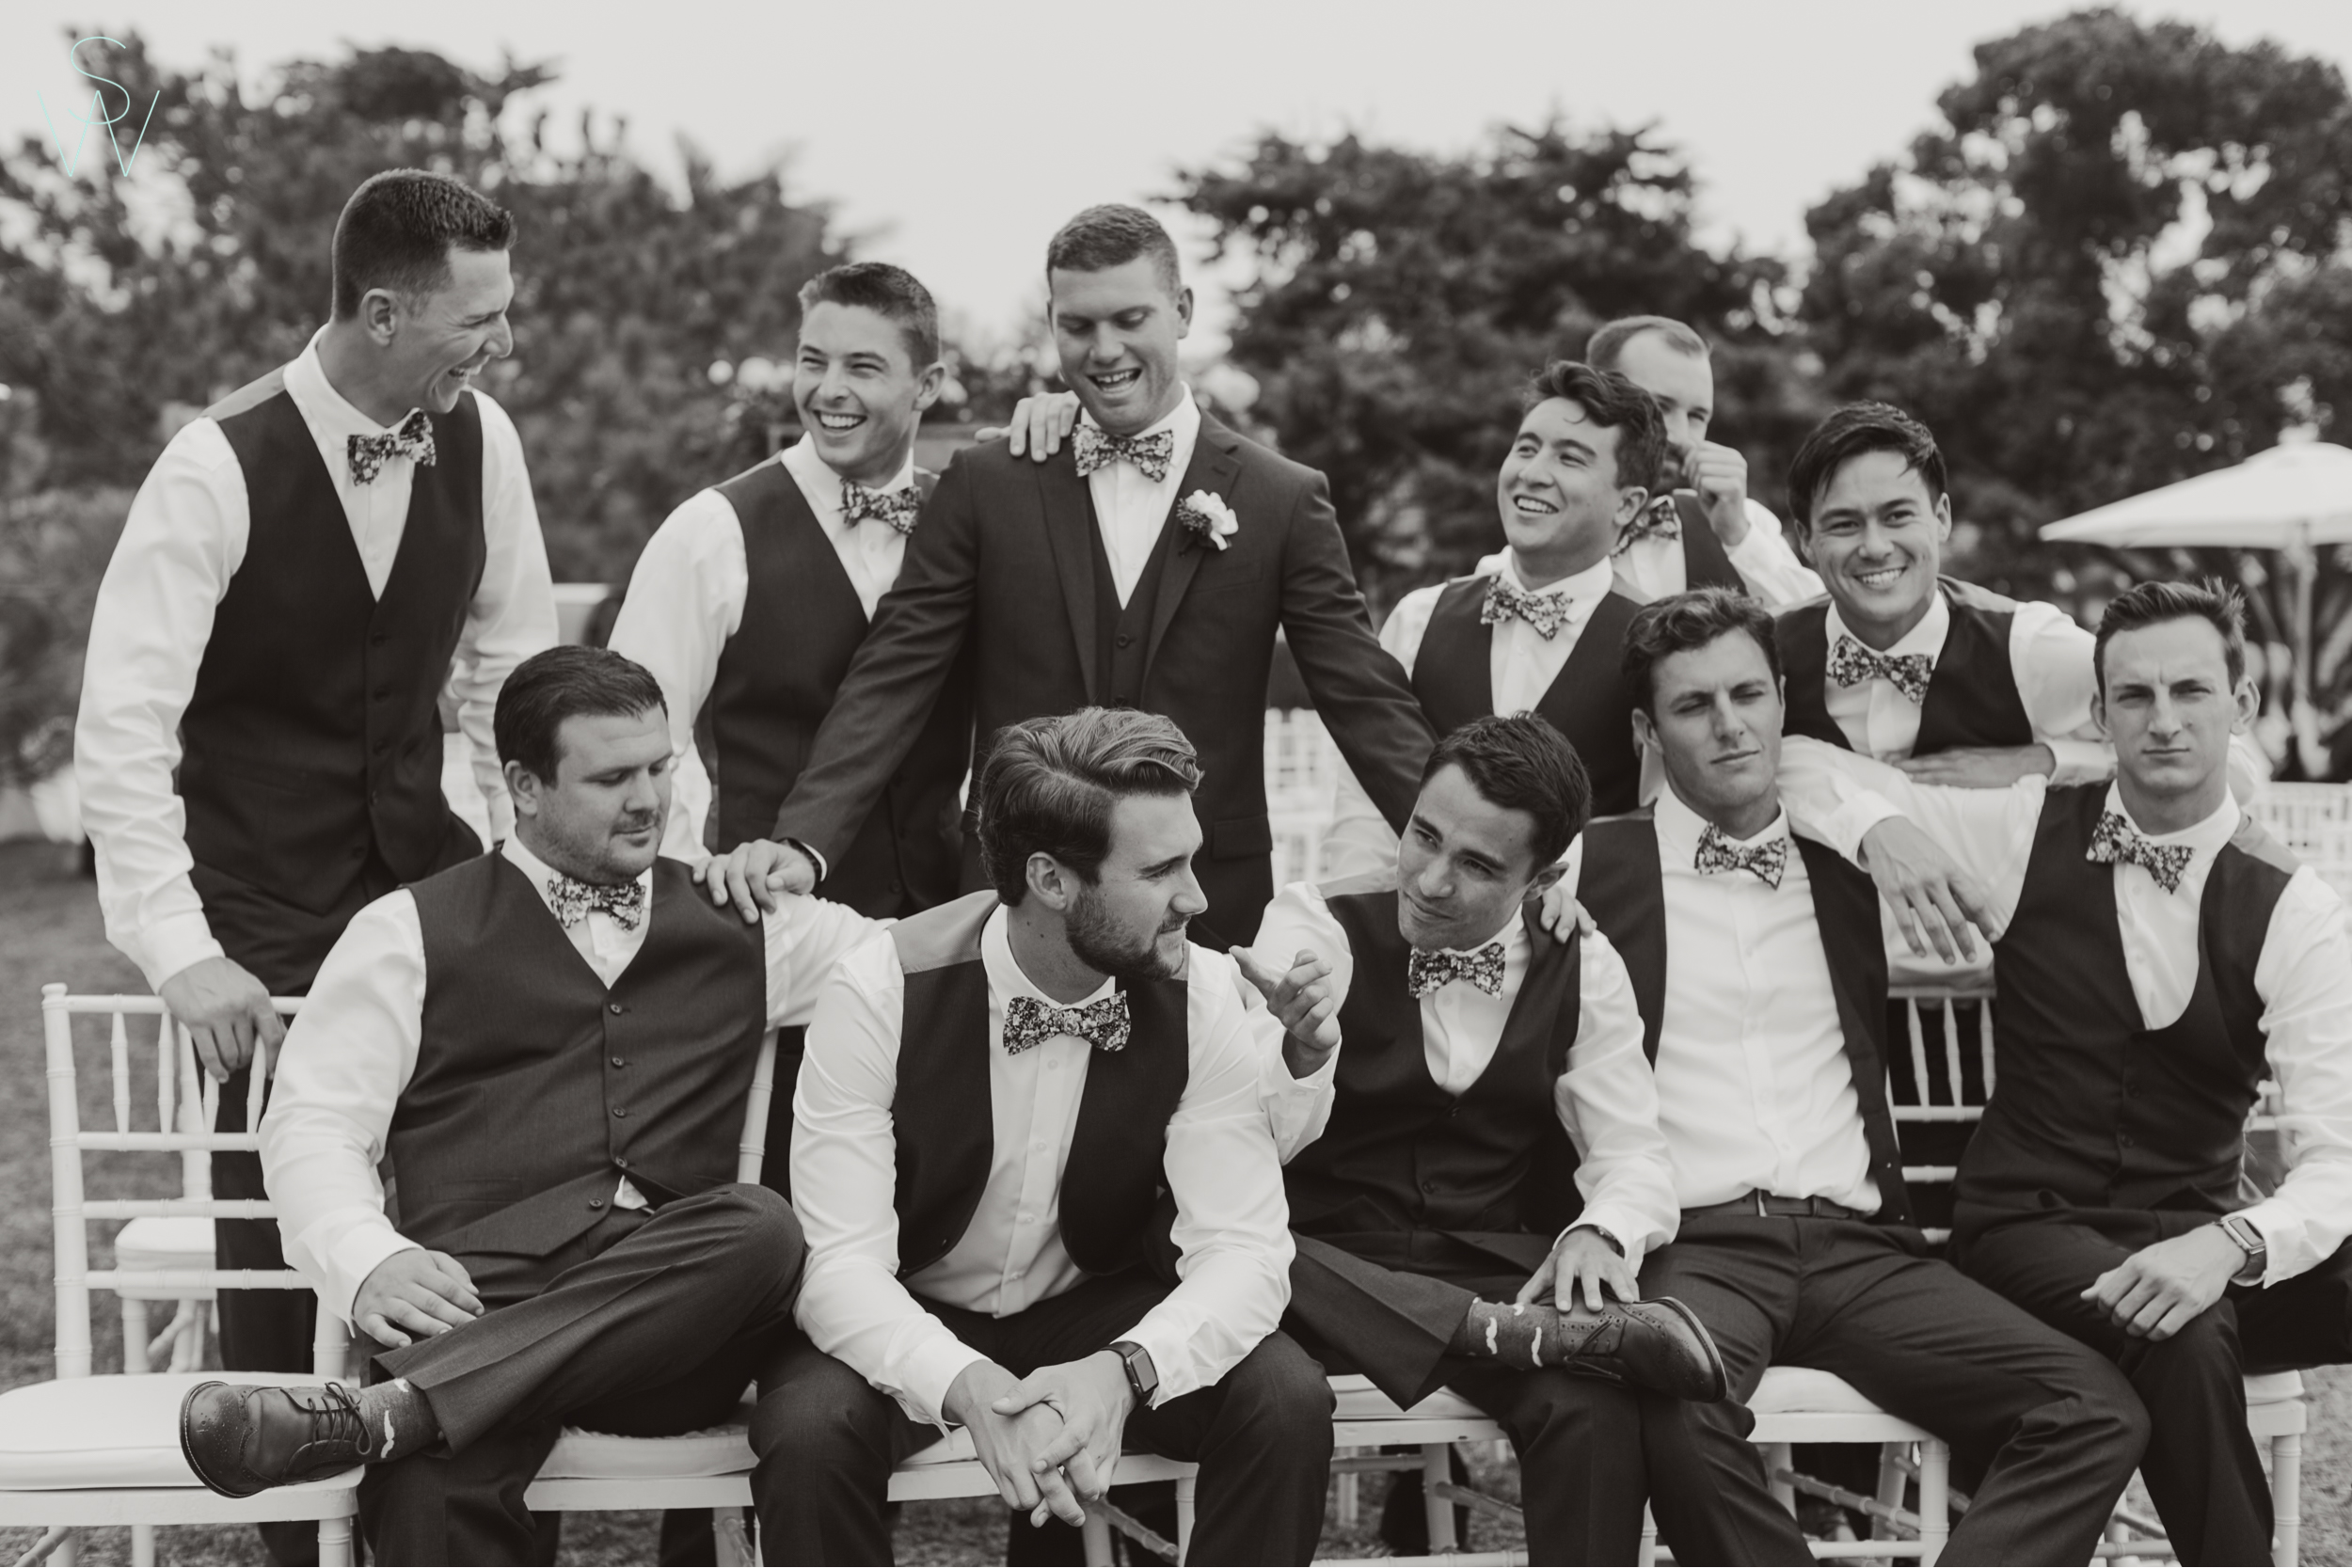 138Lauberge.shewanders.wedding.groomsman.photography.JPG